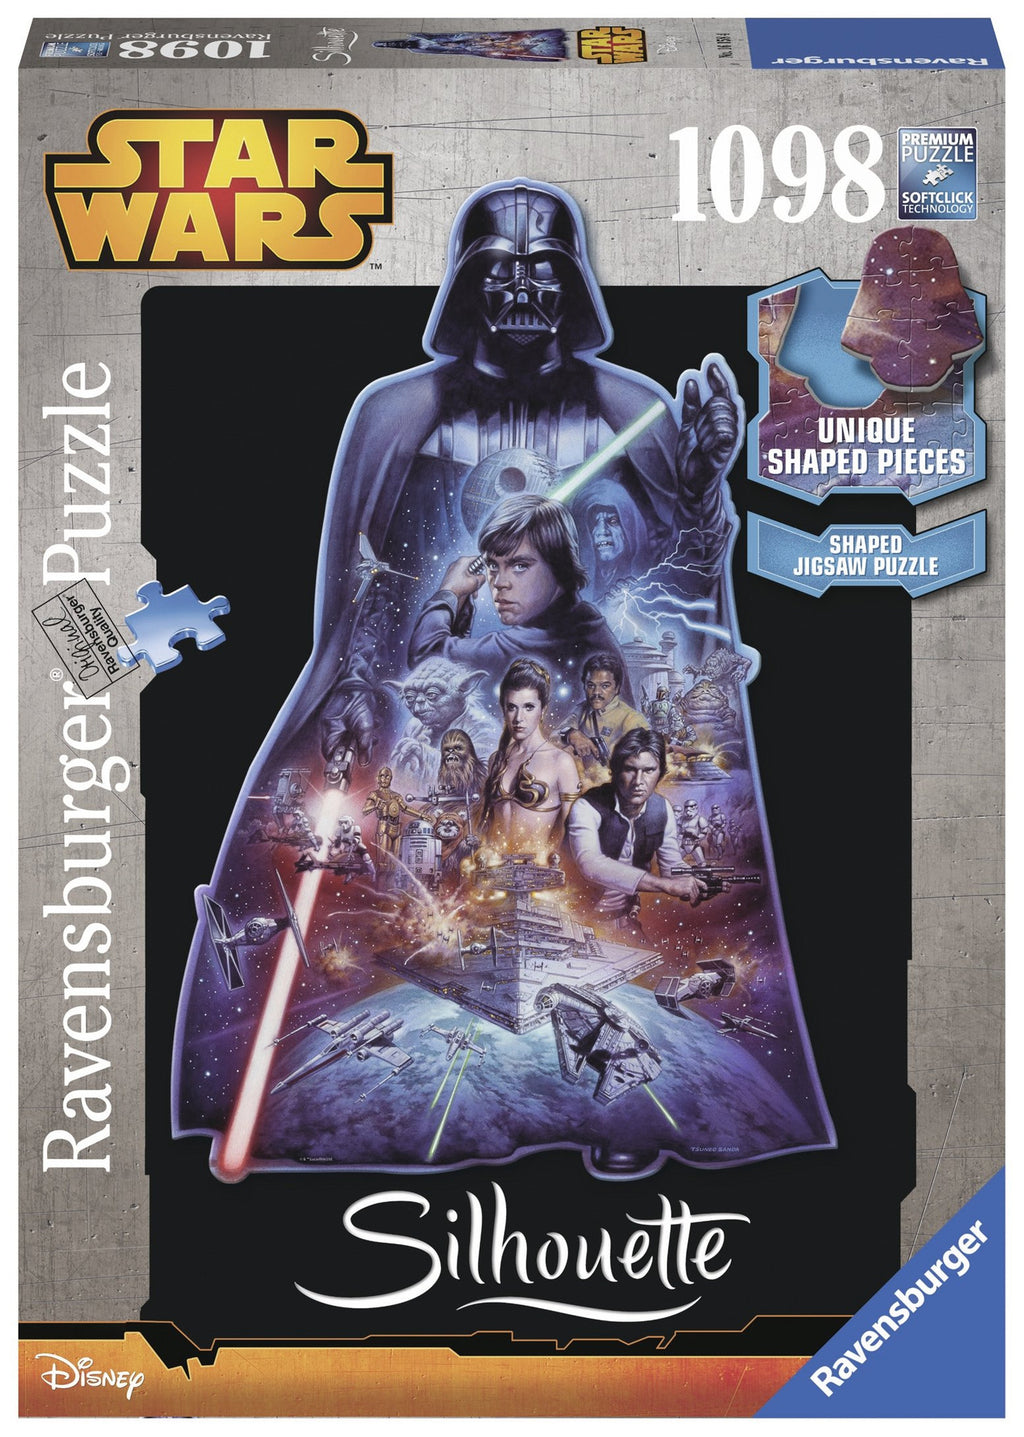 Ravensburger 1098 Pieces Puzzle Star Wars Darth Vader - 16158